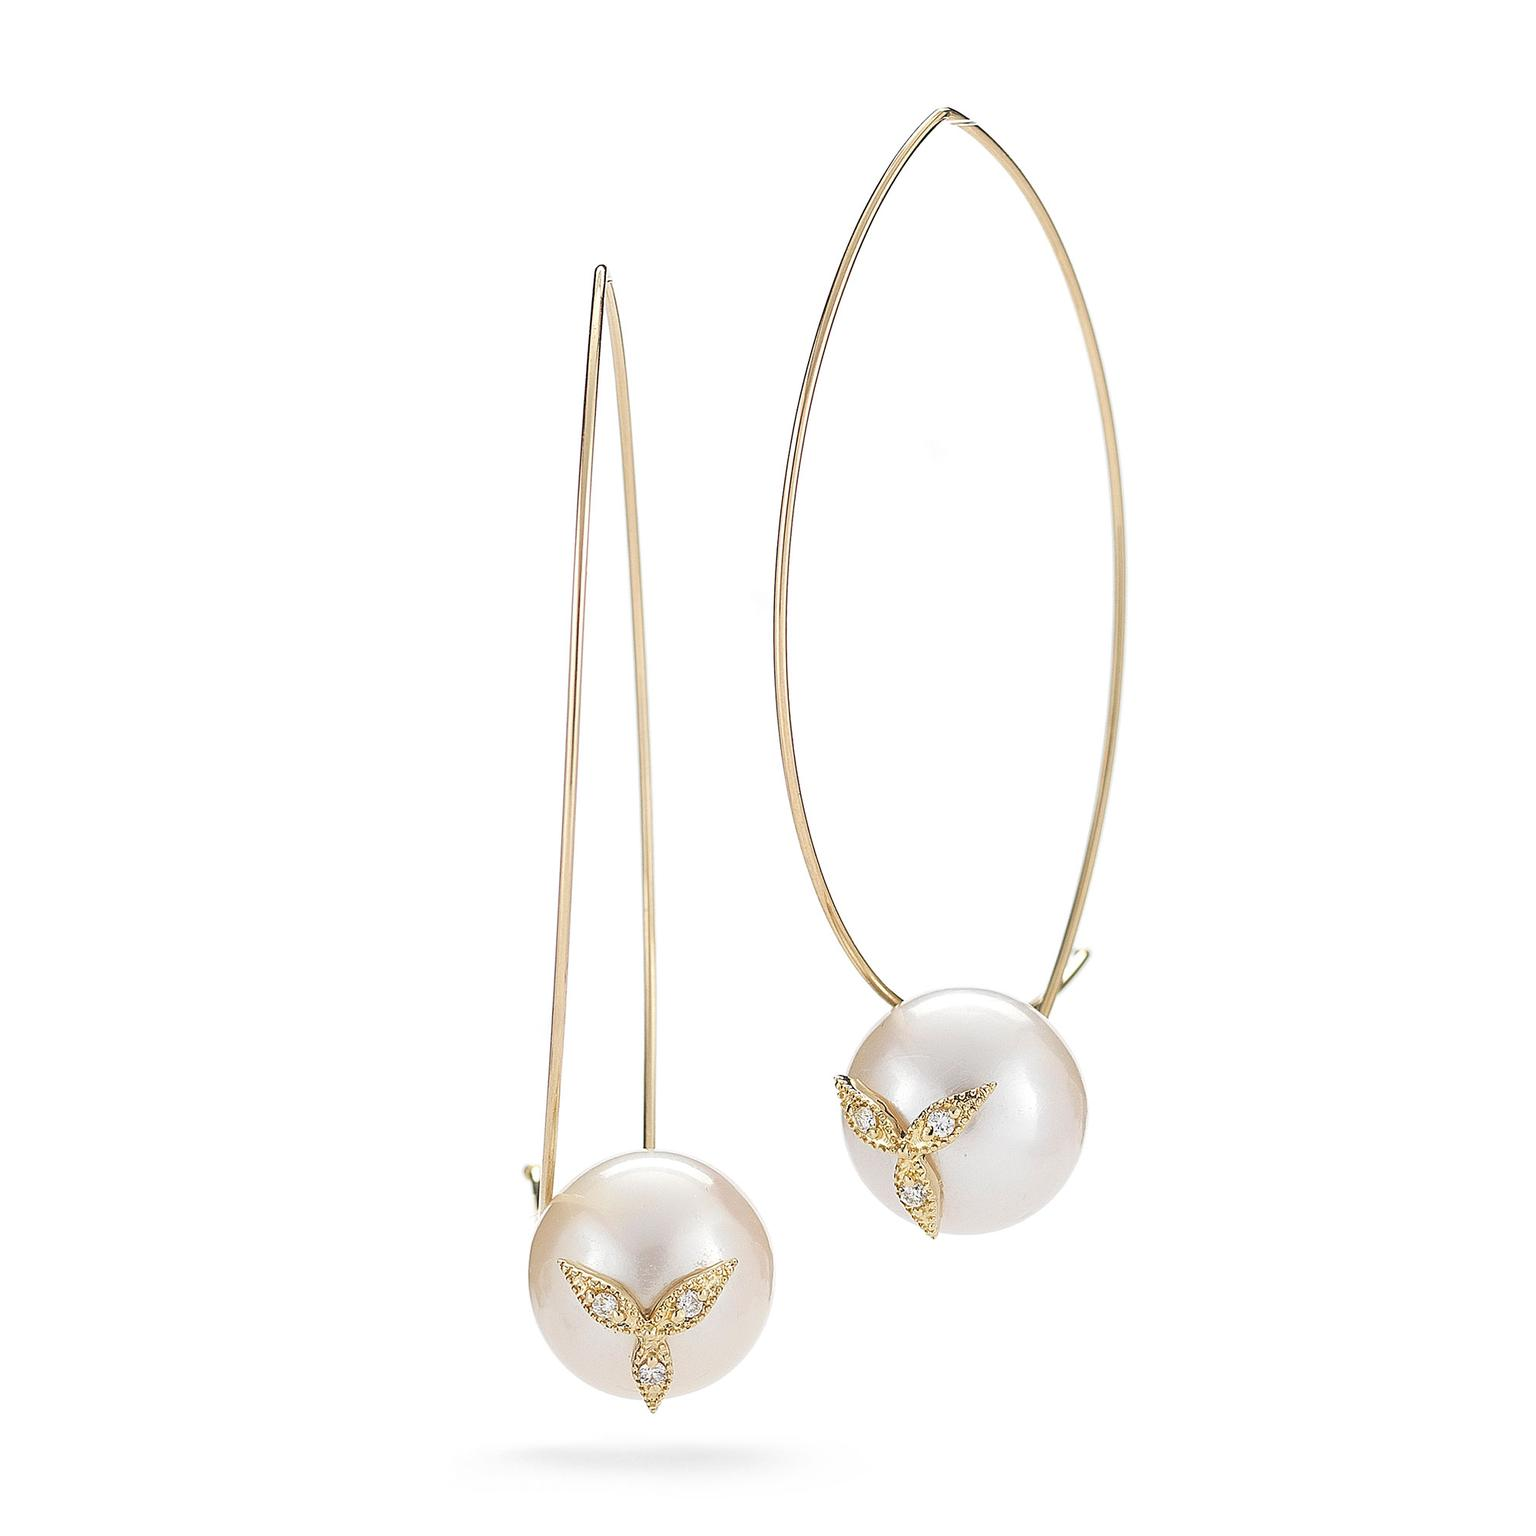 Yellow gold wire hoop earrings by Mizuki set with 11.5mm Freshwater pearls